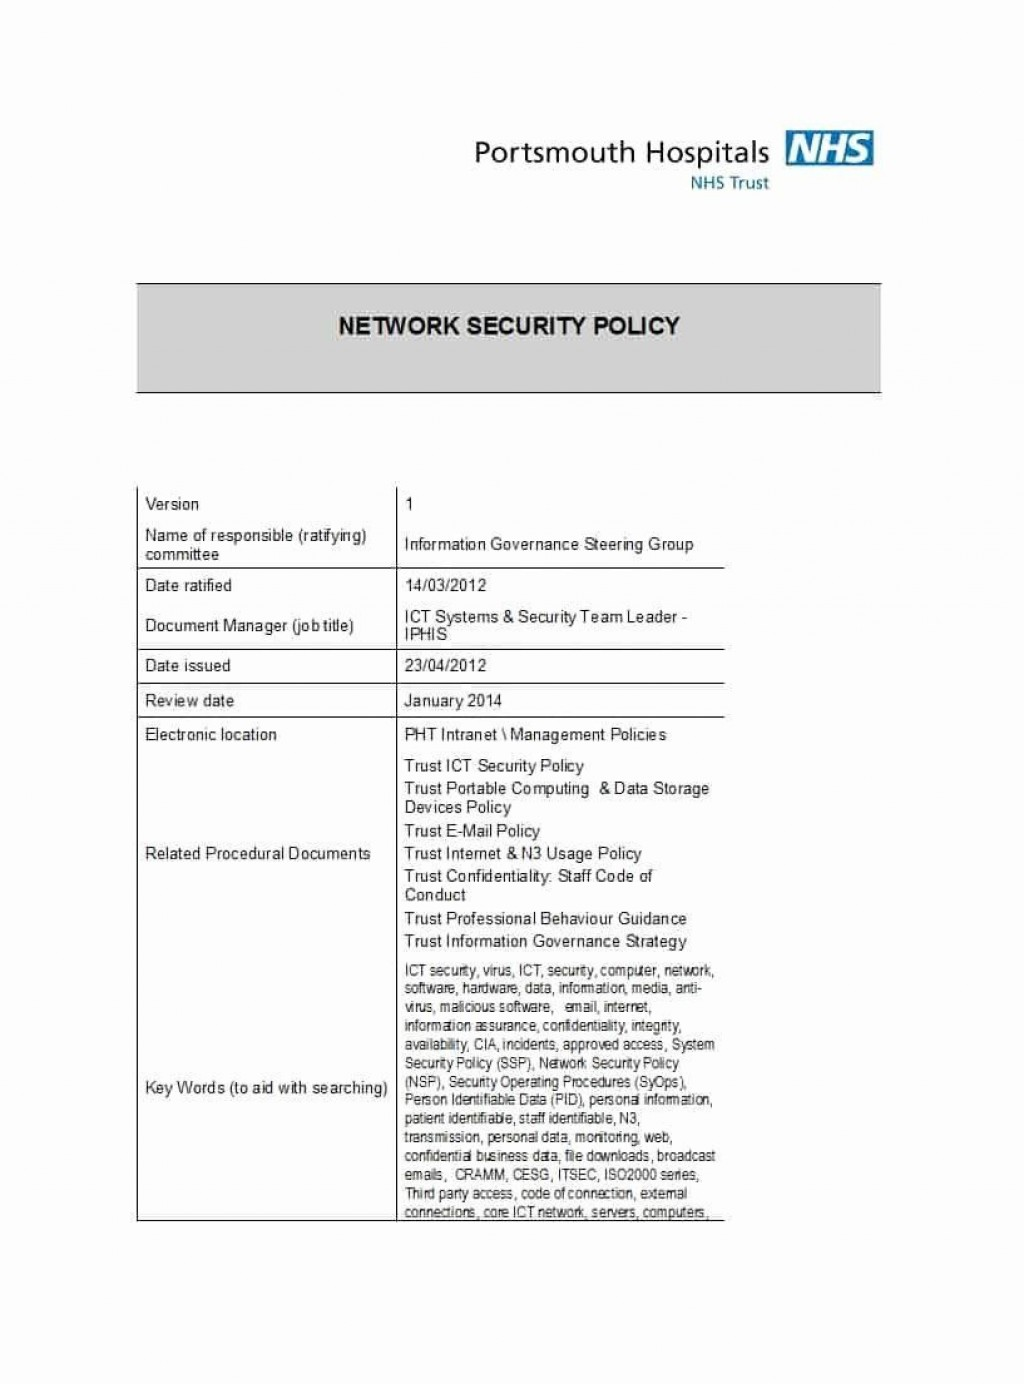 002 Formidable Information Security Policy Template High Resolution  It Sample Pdf Uk Gdpr For Small Busines AustraliaLarge